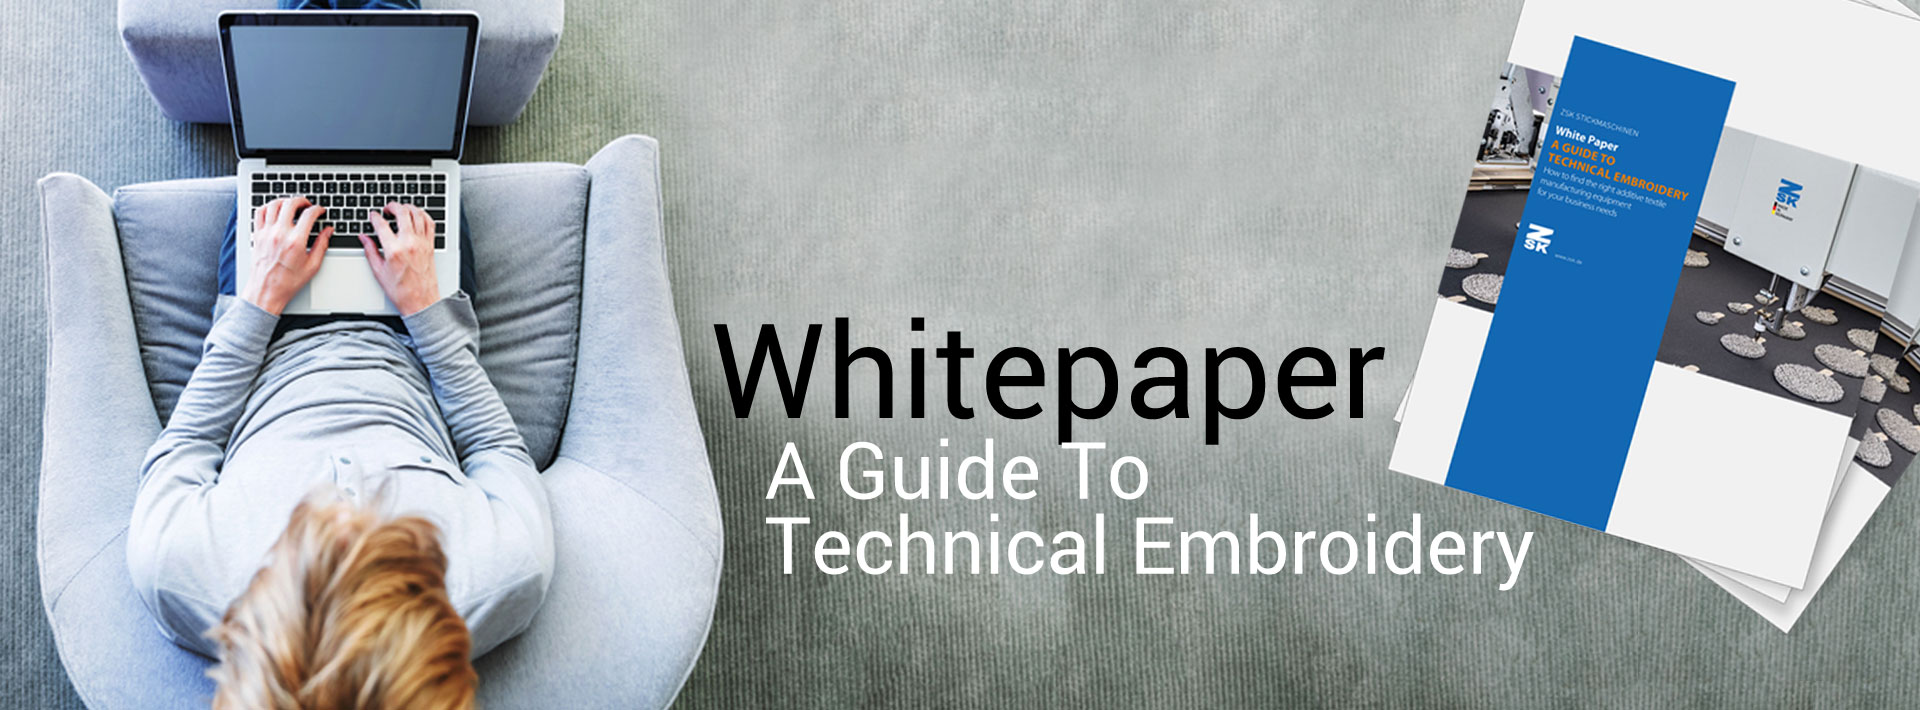 Whitepaper - ZSK TECHNICAL EMBROIDERY SYSTEMS